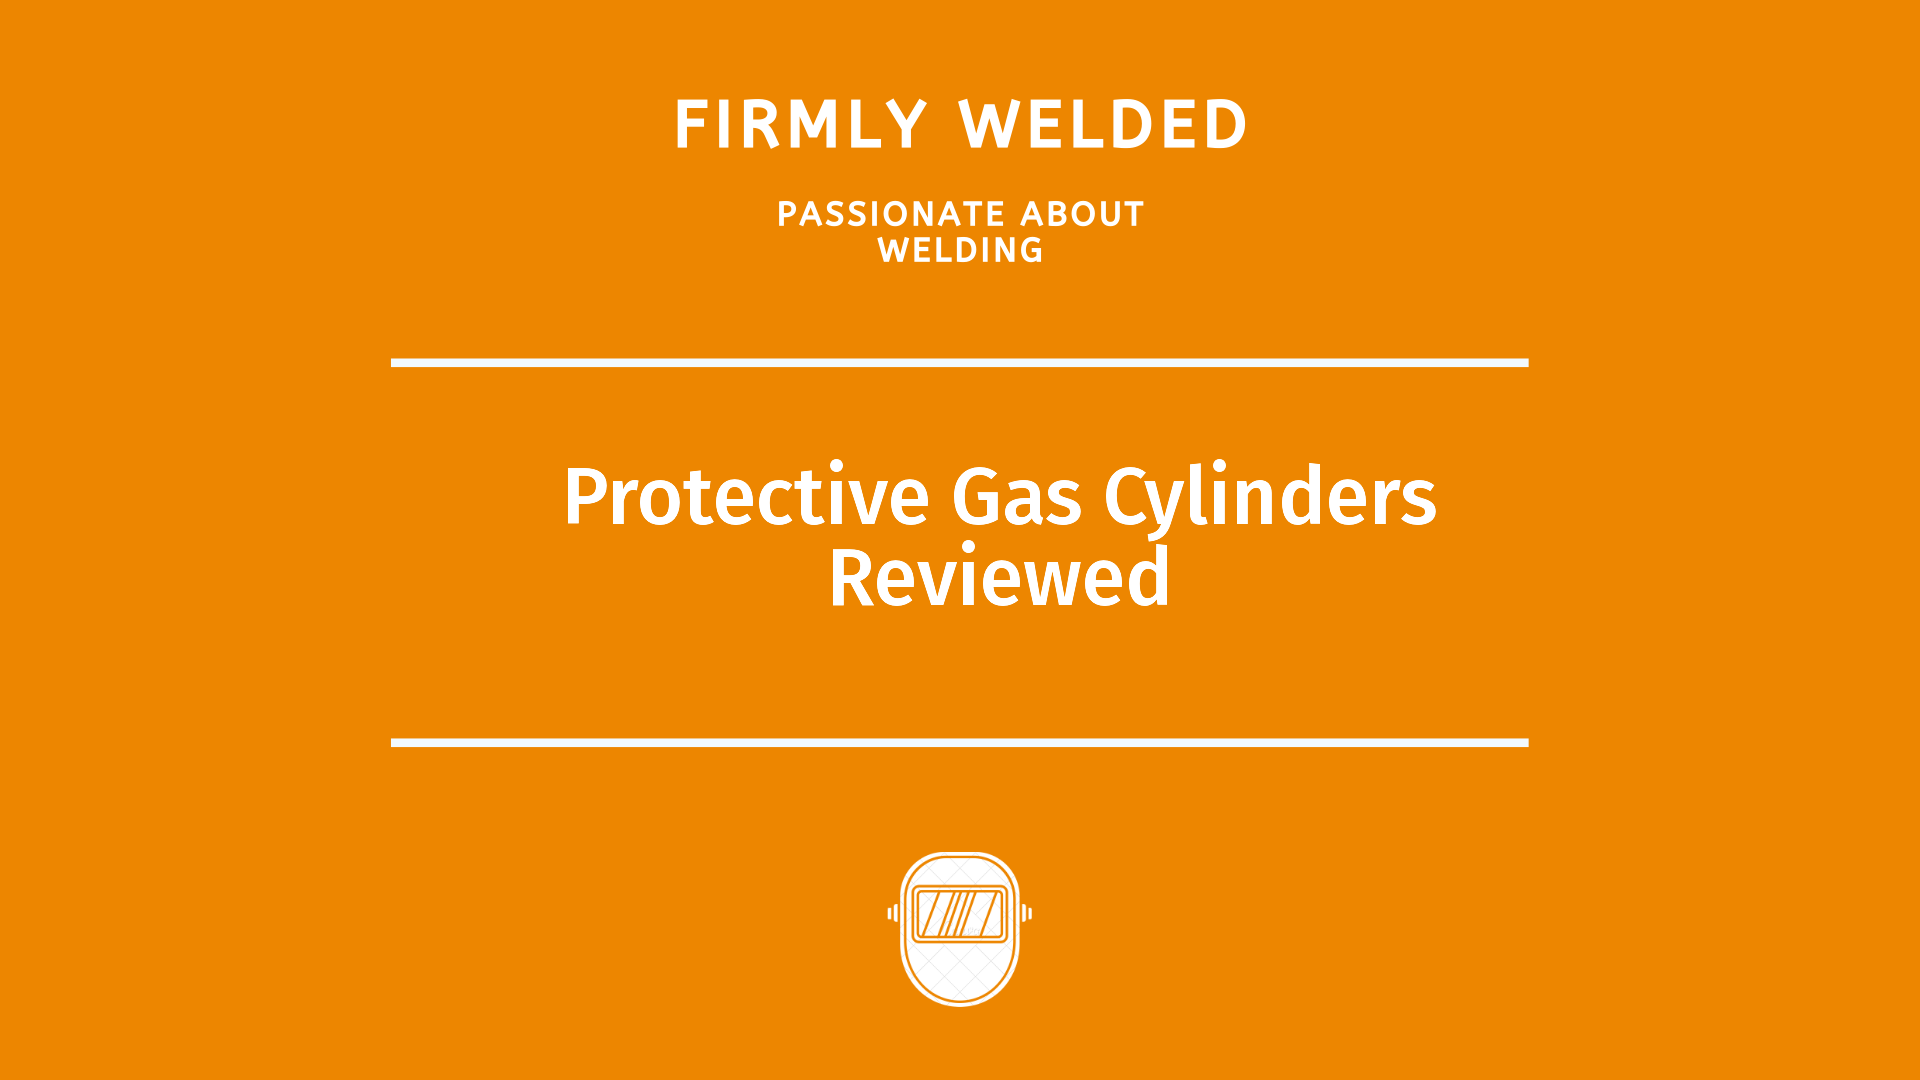 Protective Gas Cylinders Reviewed